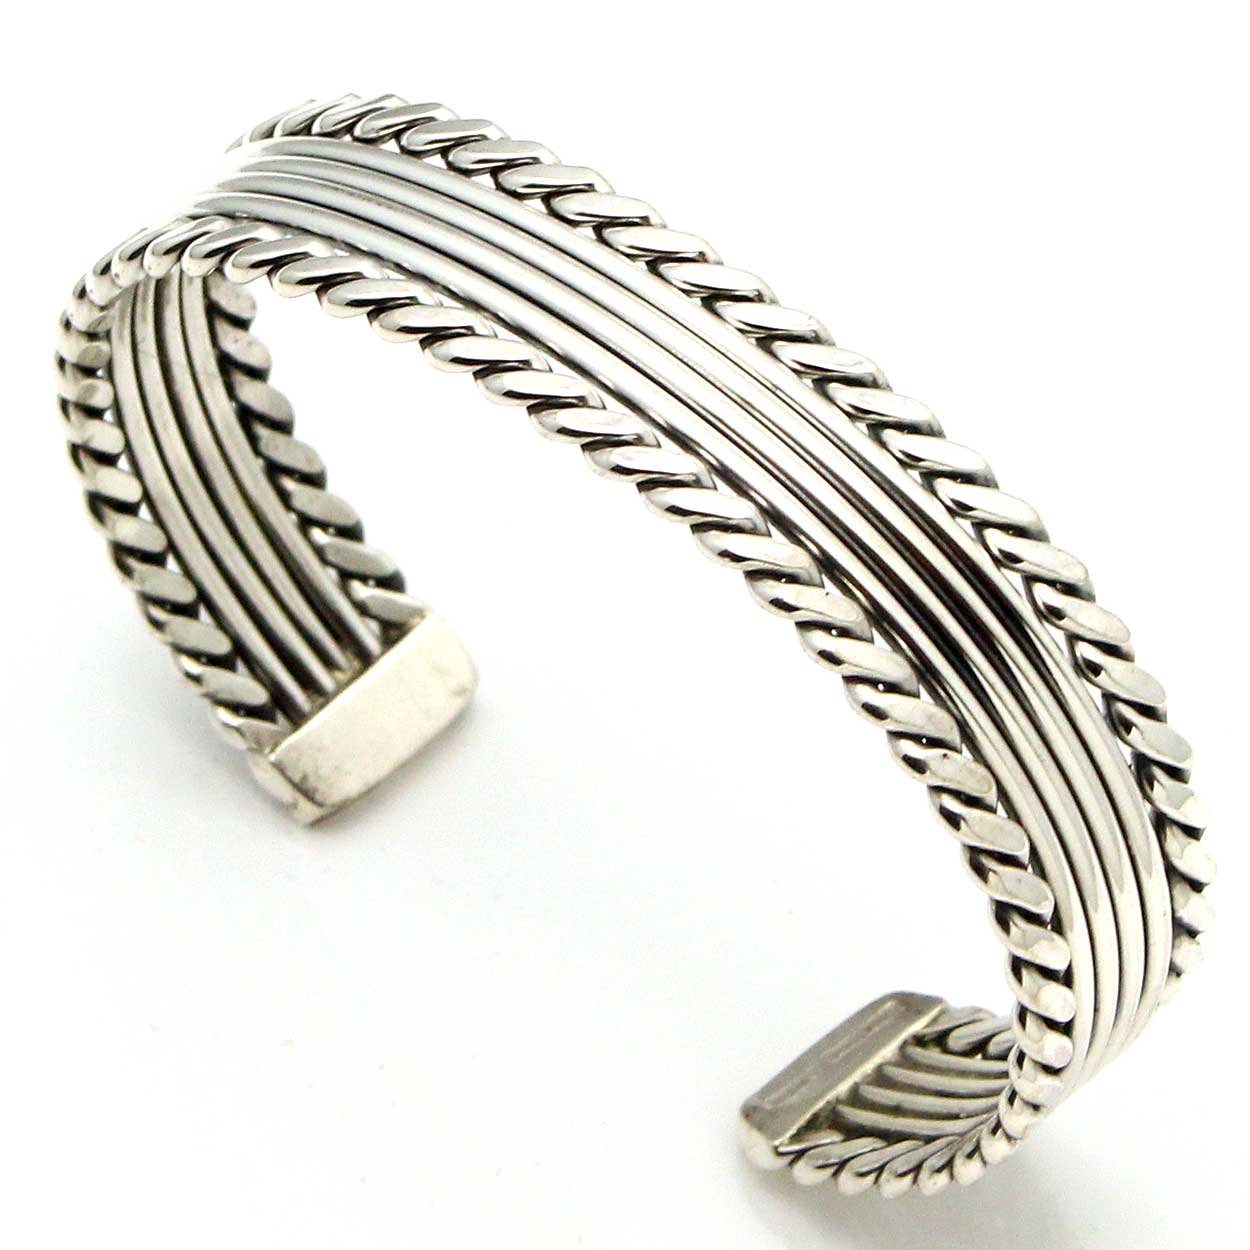 Silver Cuff By Navajo Artist Elaine Tahe (5.25'' tip to tip x 1/2'' wide) by L7 Enterprises (Image #5)